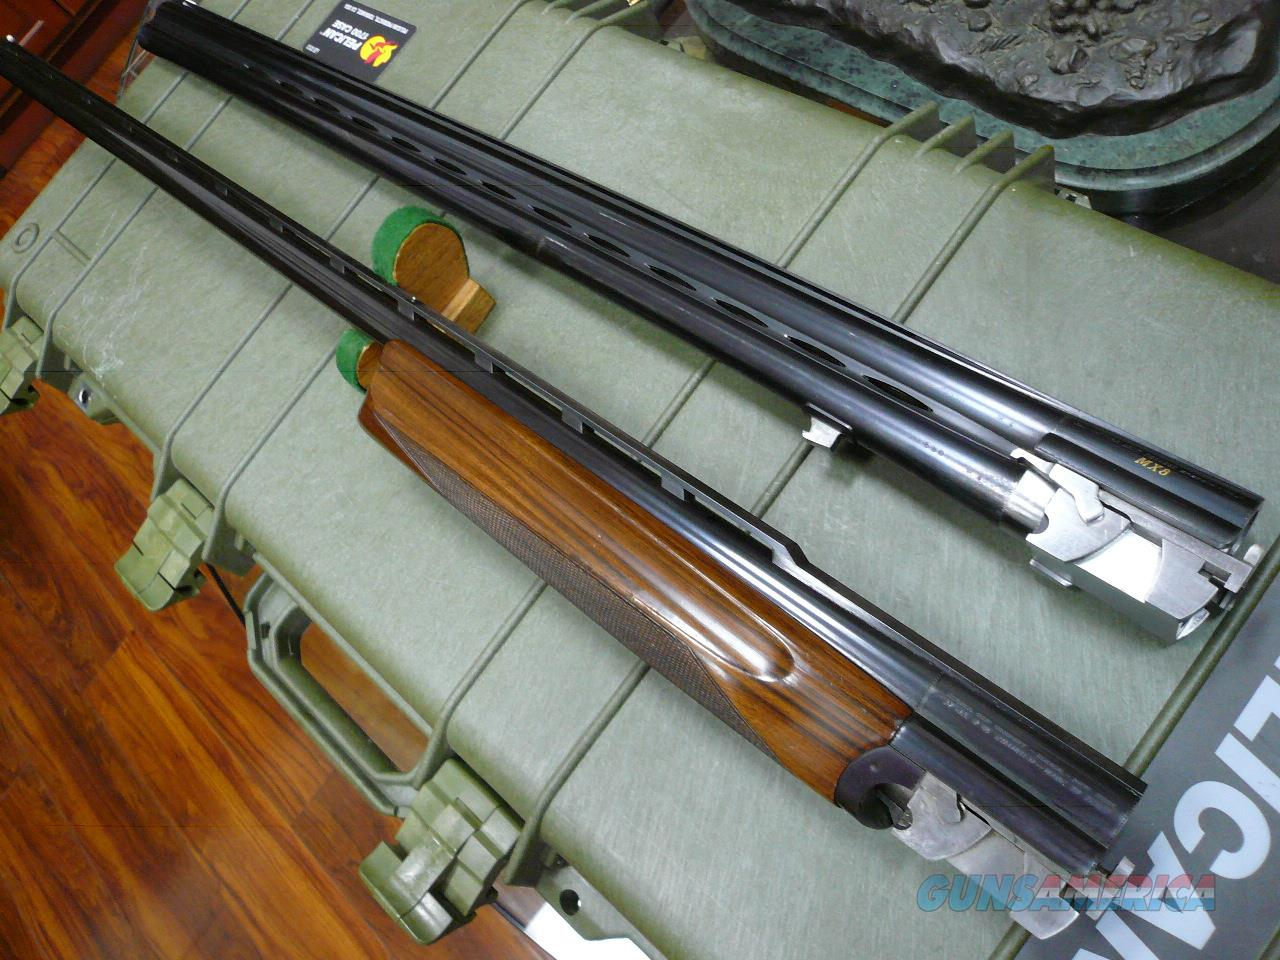 "MX8 30"" O/U BBL(TYPE-3), MX8 TOP-SINGLE (ITHACA IMPORTED TYPE-3) 32"" BBL  Guns > Shotguns > Perazzi Shotguns"